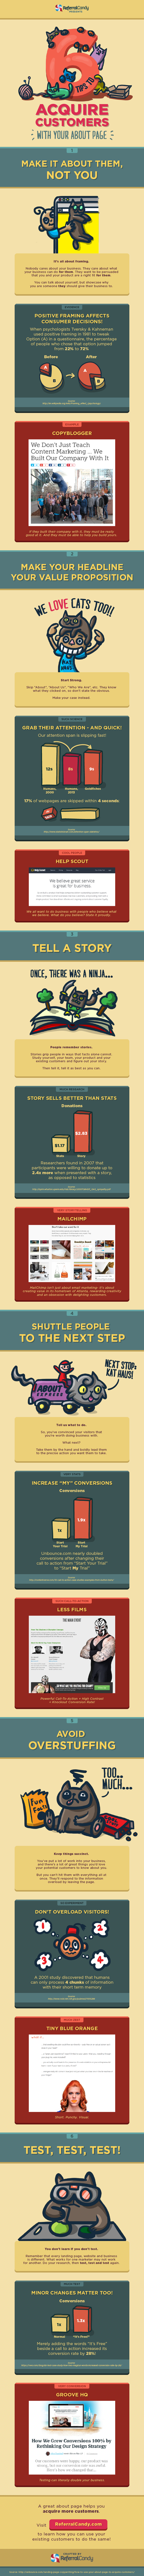 6 Tips To Acquire Customers With Your About Page [Infographic]